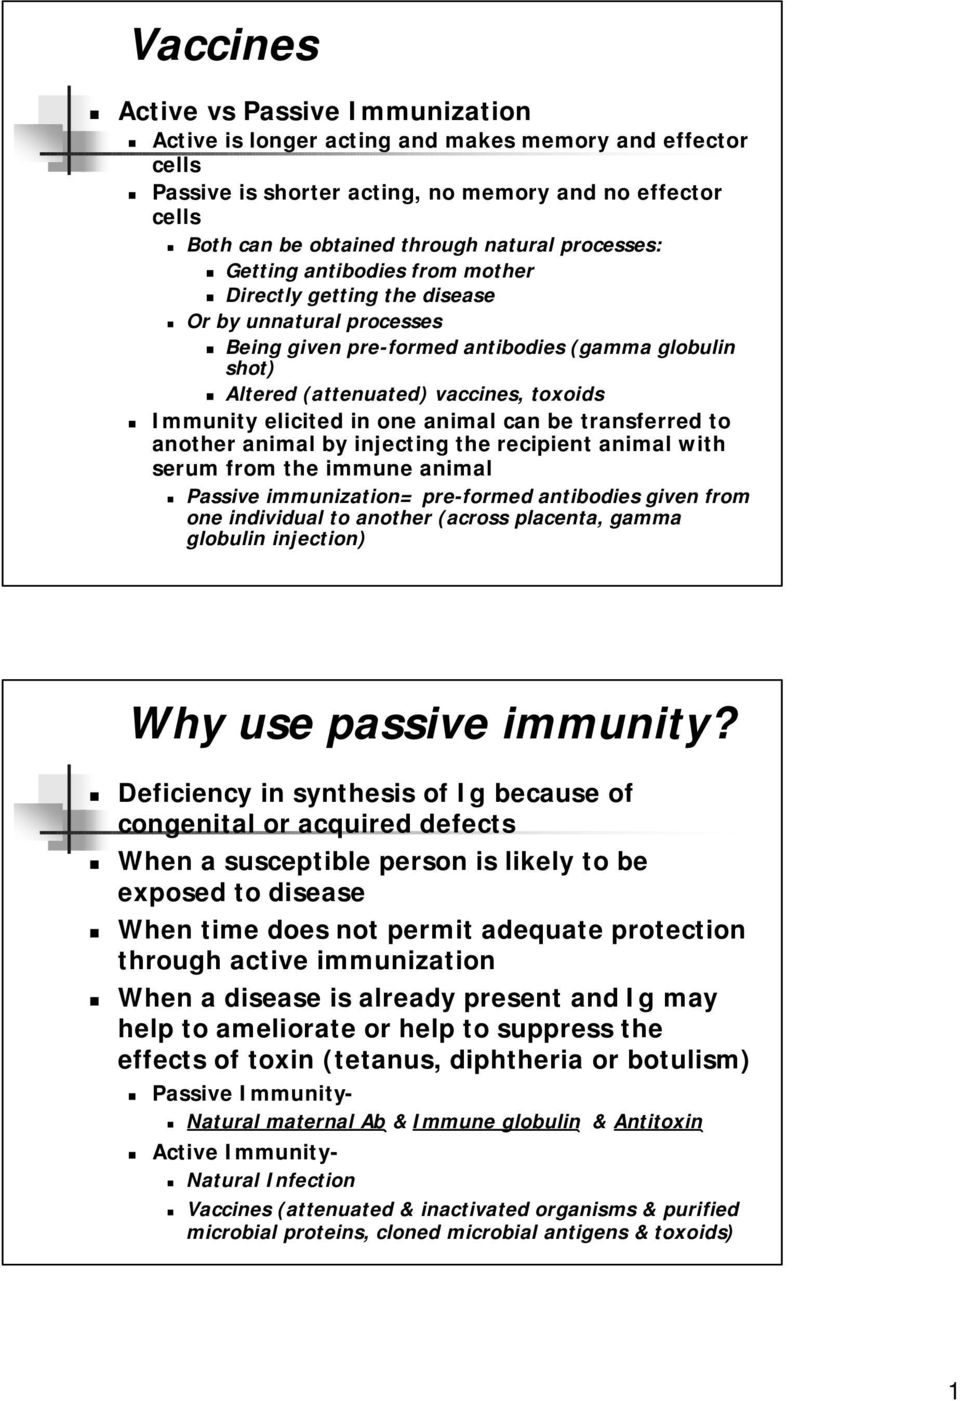 Immunity elicited in one animal can be transferred to another animal by injecting the recipient animal with serum from the immune animal Passive immunization= pre-formed antibodies given from one